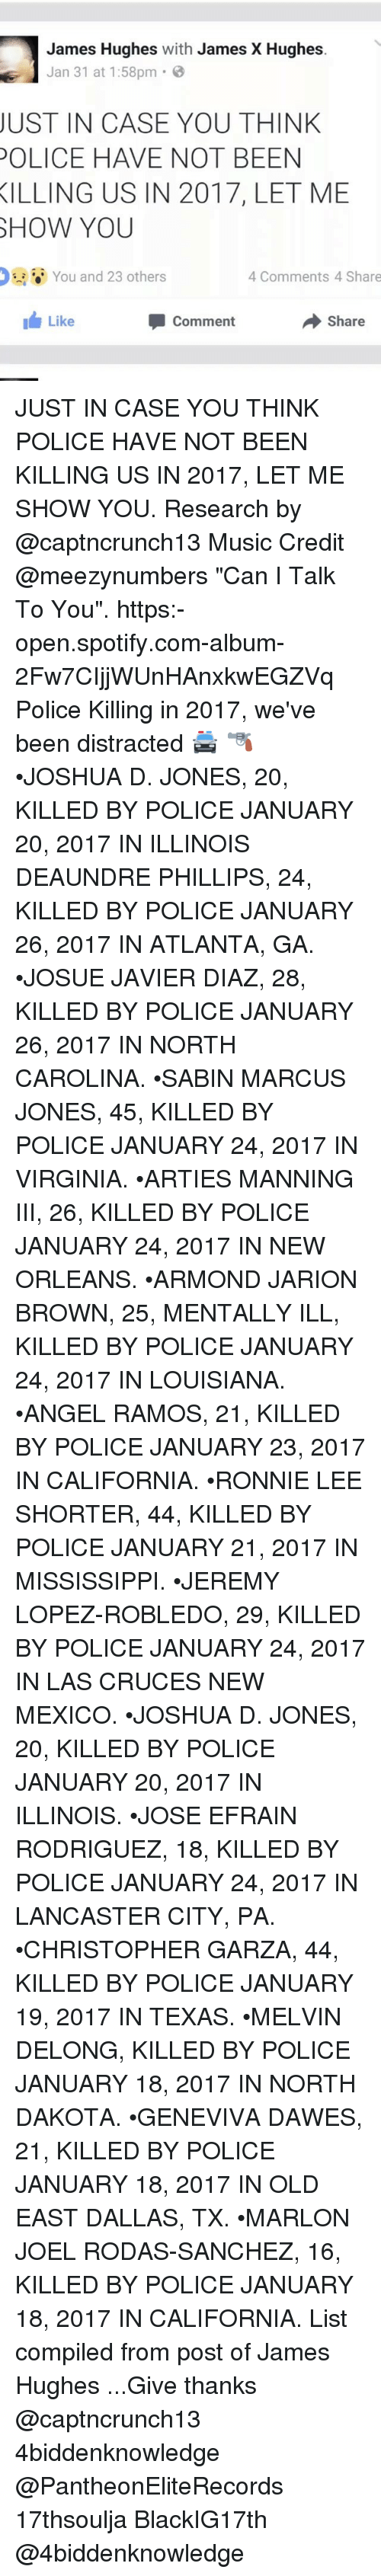 """melvins: James Hughes  with James X Hughes  Jan 31 at 1:58pm  JUST IN CASE YOU THINK  POLICE HAVE NOT BEEN  KILLING US IN 2017, LET ME  SHOW YOU  You and 23 others  4 Comments 4 Share  I Like  share  Comment JUST IN CASE YOU THINK POLICE HAVE NOT BEEN KILLING US IN 2017, LET ME SHOW YOU. Research by @captncrunch13 Music Credit @meezynumbers """"Can I Talk To You"""". https:-open.spotify.com-album-2Fw7CIjjWUnHAnxkwEGZVq Police Killing in 2017, we've been distracted 🚔 🔫 •JOSHUA D. JONES, 20, KILLED BY POLICE JANUARY 20, 2017 IN ILLINOIS DEAUNDRE PHILLIPS, 24, KILLED BY POLICE JANUARY 26, 2017 IN ATLANTA, GA. •JOSUE JAVIER DIAZ, 28, KILLED BY POLICE JANUARY 26, 2017 IN NORTH CAROLINA. •SABIN MARCUS JONES, 45, KILLED BY POLICE JANUARY 24, 2017 IN VIRGINIA. •ARTIES MANNING III, 26, KILLED BY POLICE JANUARY 24, 2017 IN NEW ORLEANS. •ARMOND JARION BROWN, 25, MENTALLY ILL, KILLED BY POLICE JANUARY 24, 2017 IN LOUISIANA. •ANGEL RAMOS, 21, KILLED BY POLICE JANUARY 23, 2017 IN CALIFORNIA. •RONNIE LEE SHORTER, 44, KILLED BY POLICE JANUARY 21, 2017 IN MISSISSIPPI. •JEREMY LOPEZ-ROBLEDO, 29, KILLED BY POLICE JANUARY 24, 2017 IN LAS CRUCES NEW MEXICO. •JOSHUA D. JONES, 20, KILLED BY POLICE JANUARY 20, 2017 IN ILLINOIS. •JOSE EFRAIN RODRIGUEZ, 18, KILLED BY POLICE JANUARY 24, 2017 IN LANCASTER CITY, PA. •CHRISTOPHER GARZA, 44, KILLED BY POLICE JANUARY 19, 2017 IN TEXAS. •MELVIN DELONG, KILLED BY POLICE JANUARY 18, 2017 IN NORTH DAKOTA. •GENEVIVA DAWES, 21, KILLED BY POLICE JANUARY 18, 2017 IN OLD EAST DALLAS, TX. •MARLON JOEL RODAS-SANCHEZ, 16, KILLED BY POLICE JANUARY 18, 2017 IN CALIFORNIA. List compiled from post of James Hughes ...Give thanks @captncrunch13 4biddenknowledge @PantheonEliteRecords 17thsoulja BlackIG17th @4biddenknowledge"""